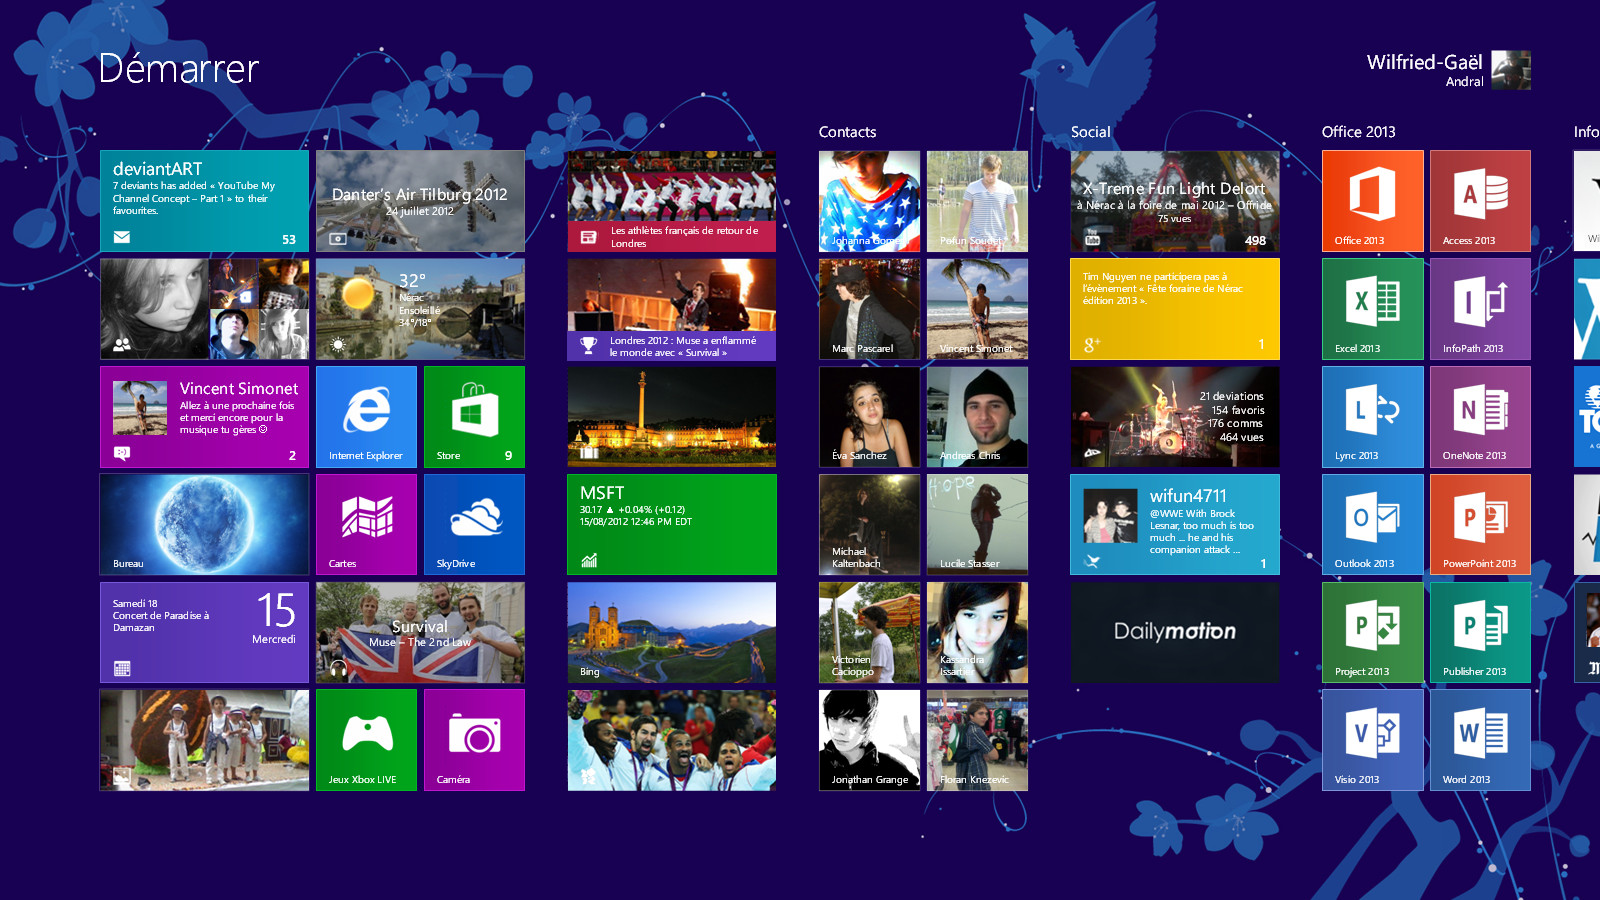 Windows 8 rtm startscreen concept 4 15 08 2012 by for 15 window